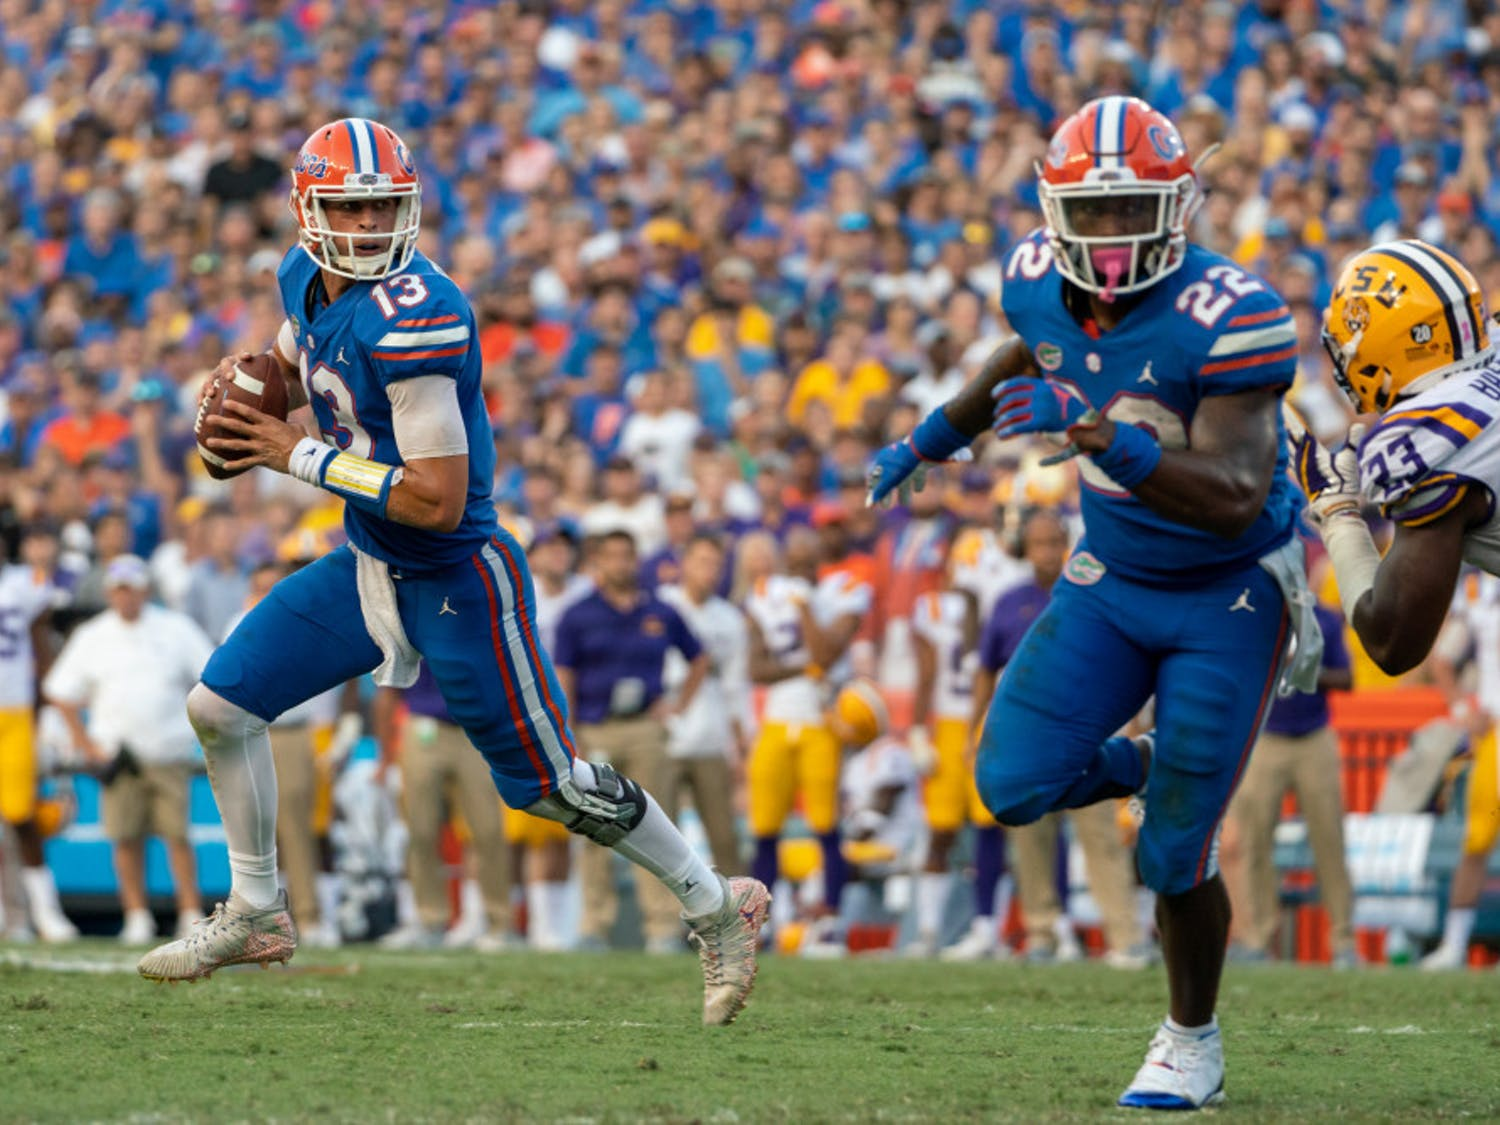 """Quarterback Feleipe Franks (13) said the Gators are still working on fundamentals in practice. """"You can't get complacent,"""" he said."""